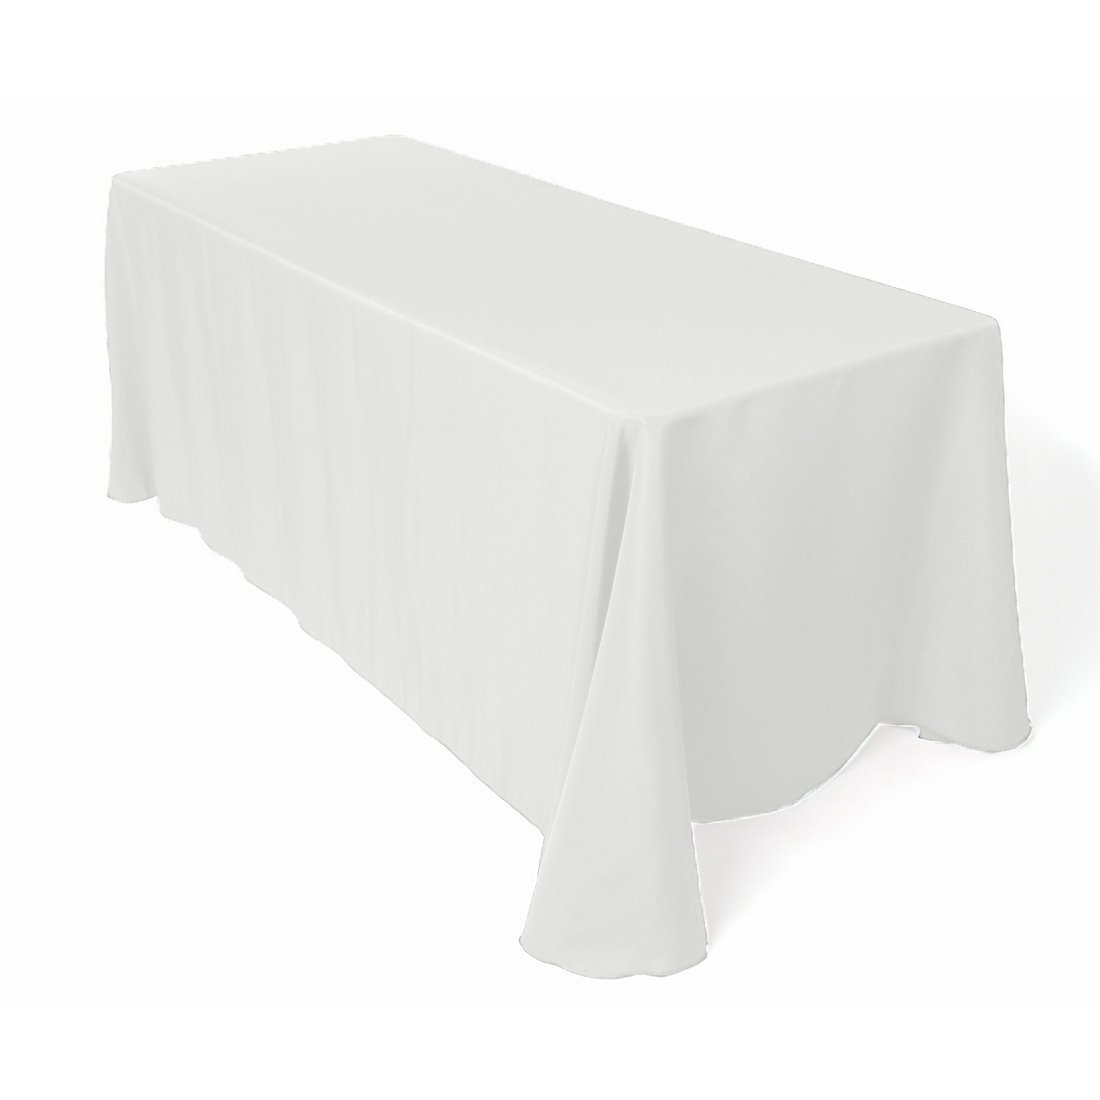 Craft and Party 90'' X 156'' Rectangular Polyester Tablecloth (White)